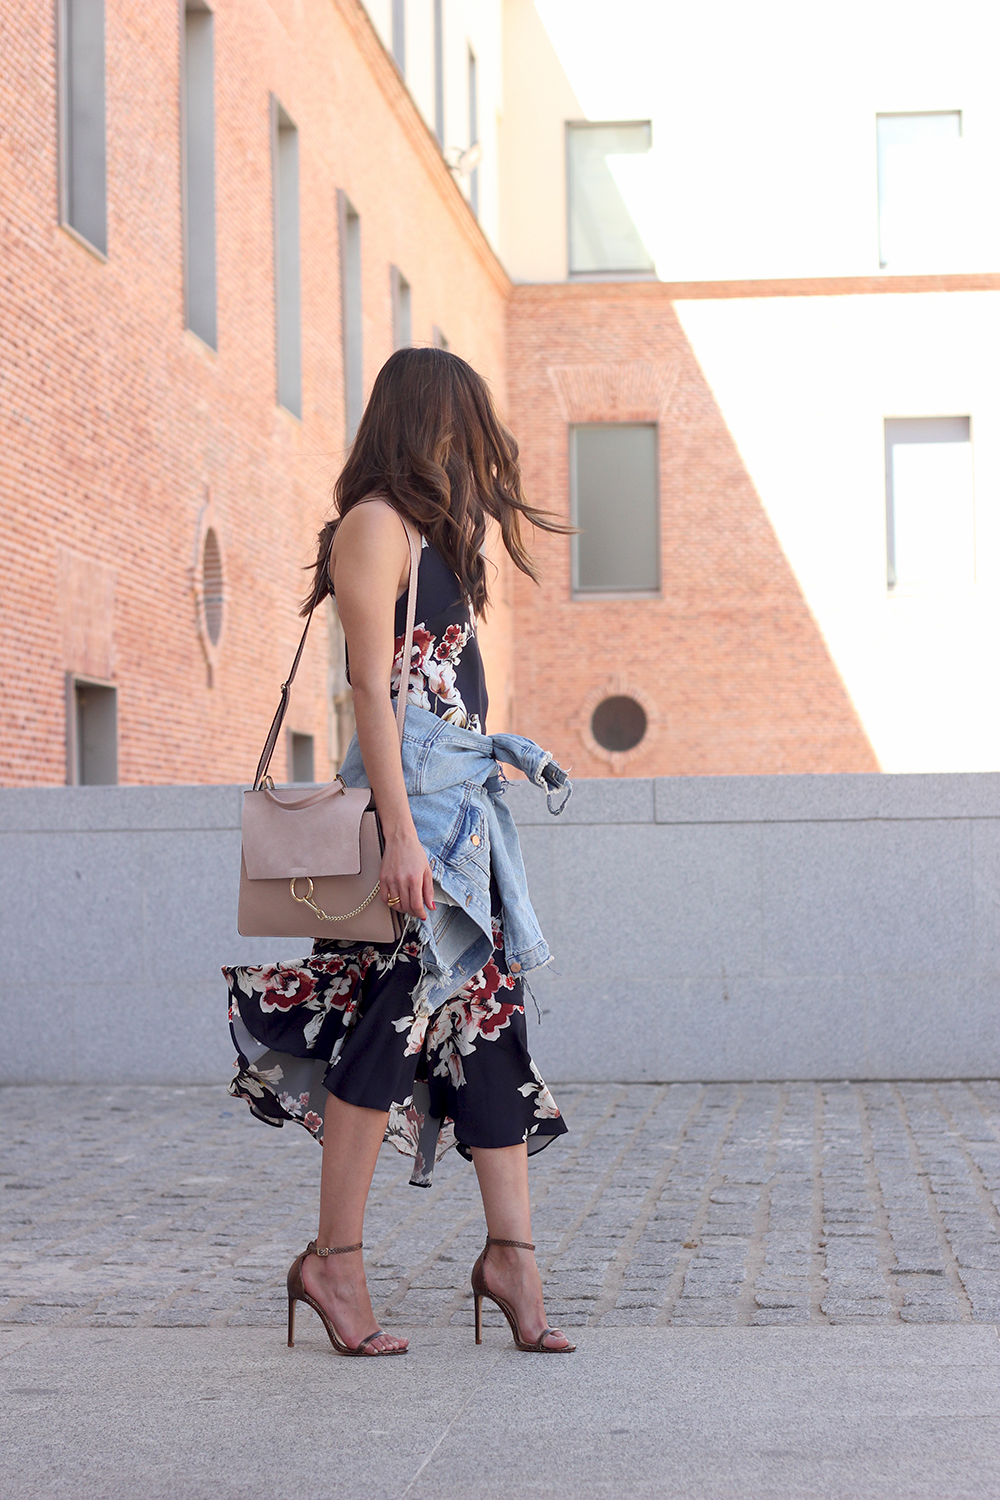 Floral dress denim jacket heels spring outfit style fashion04